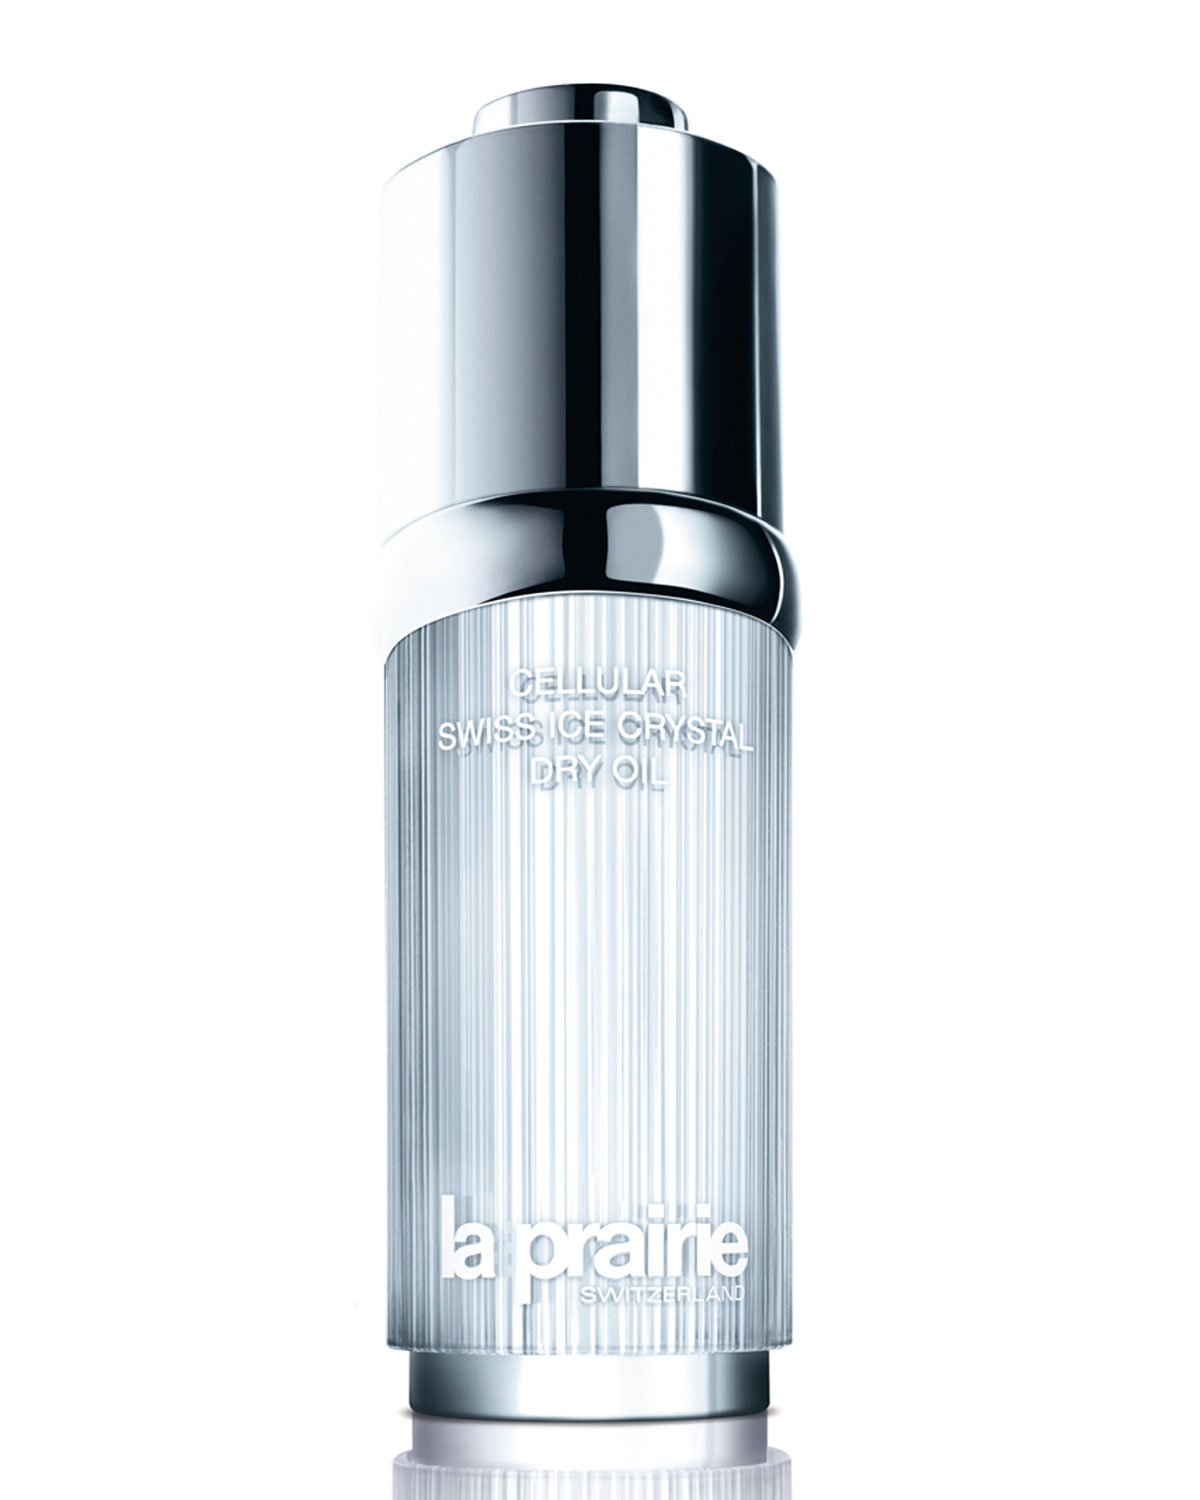 LA PRAIRIE Cellular Swiss Ice Crystal Dry Oil/1 Oz.